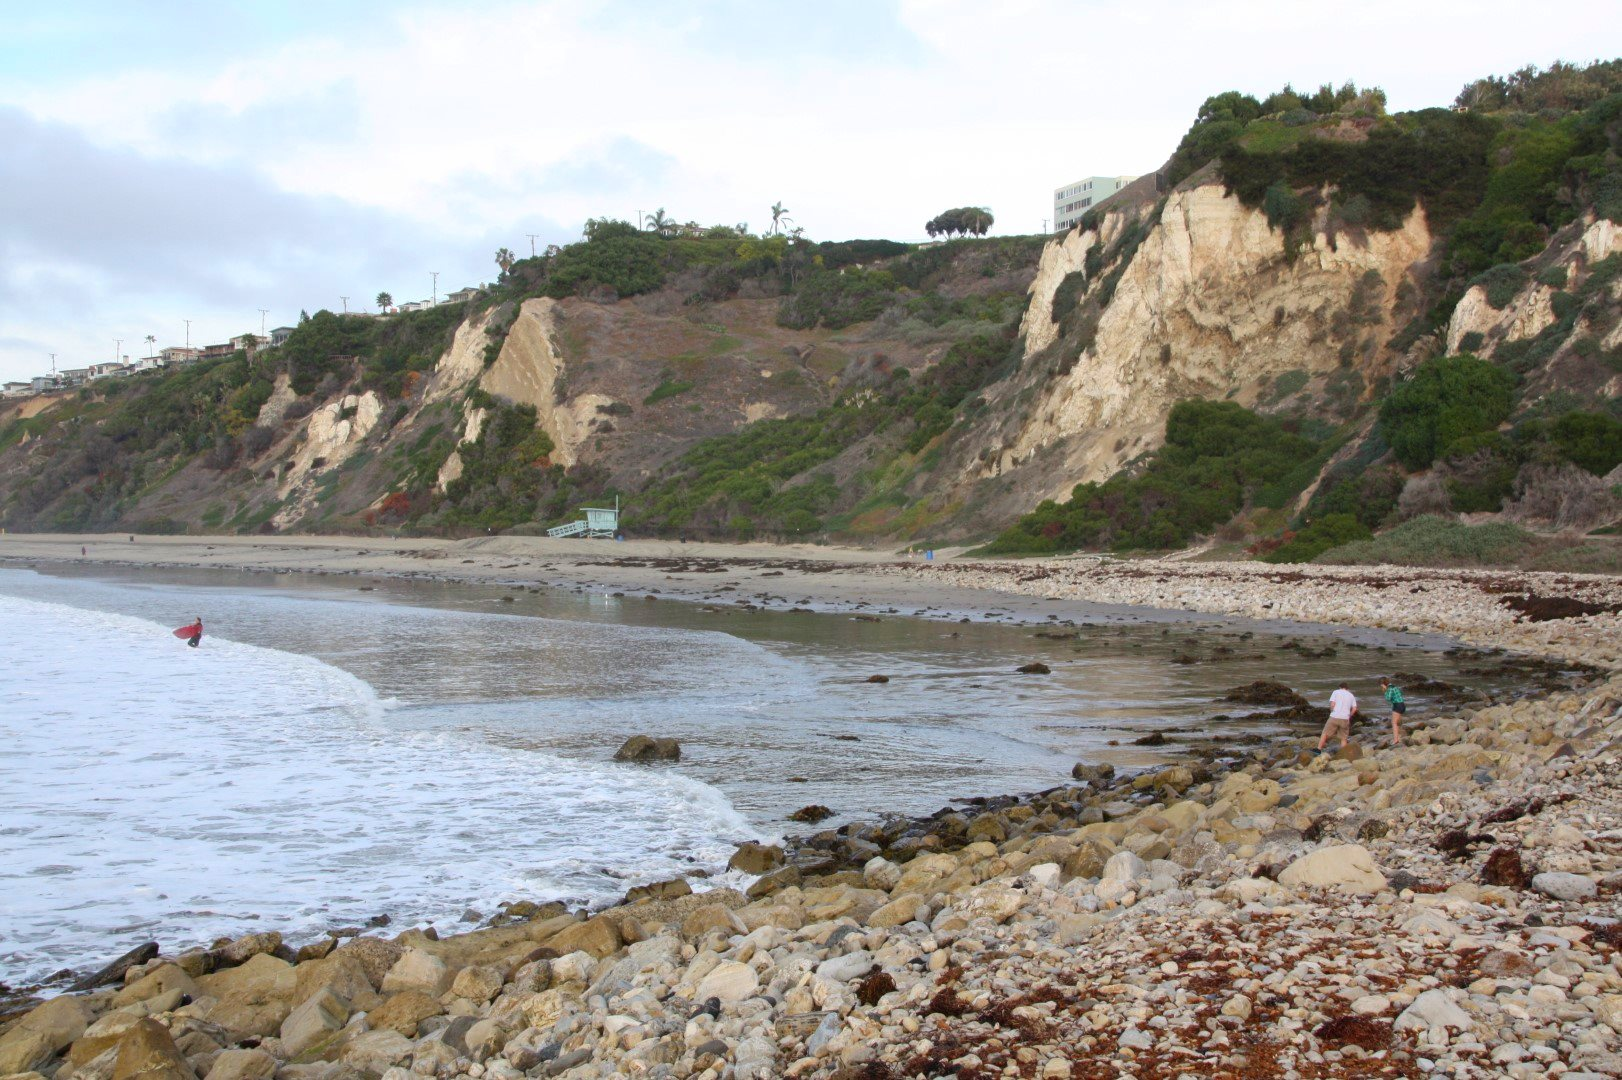 Malaga Cove Beach Palos Verdes Estates Ca California Beaches